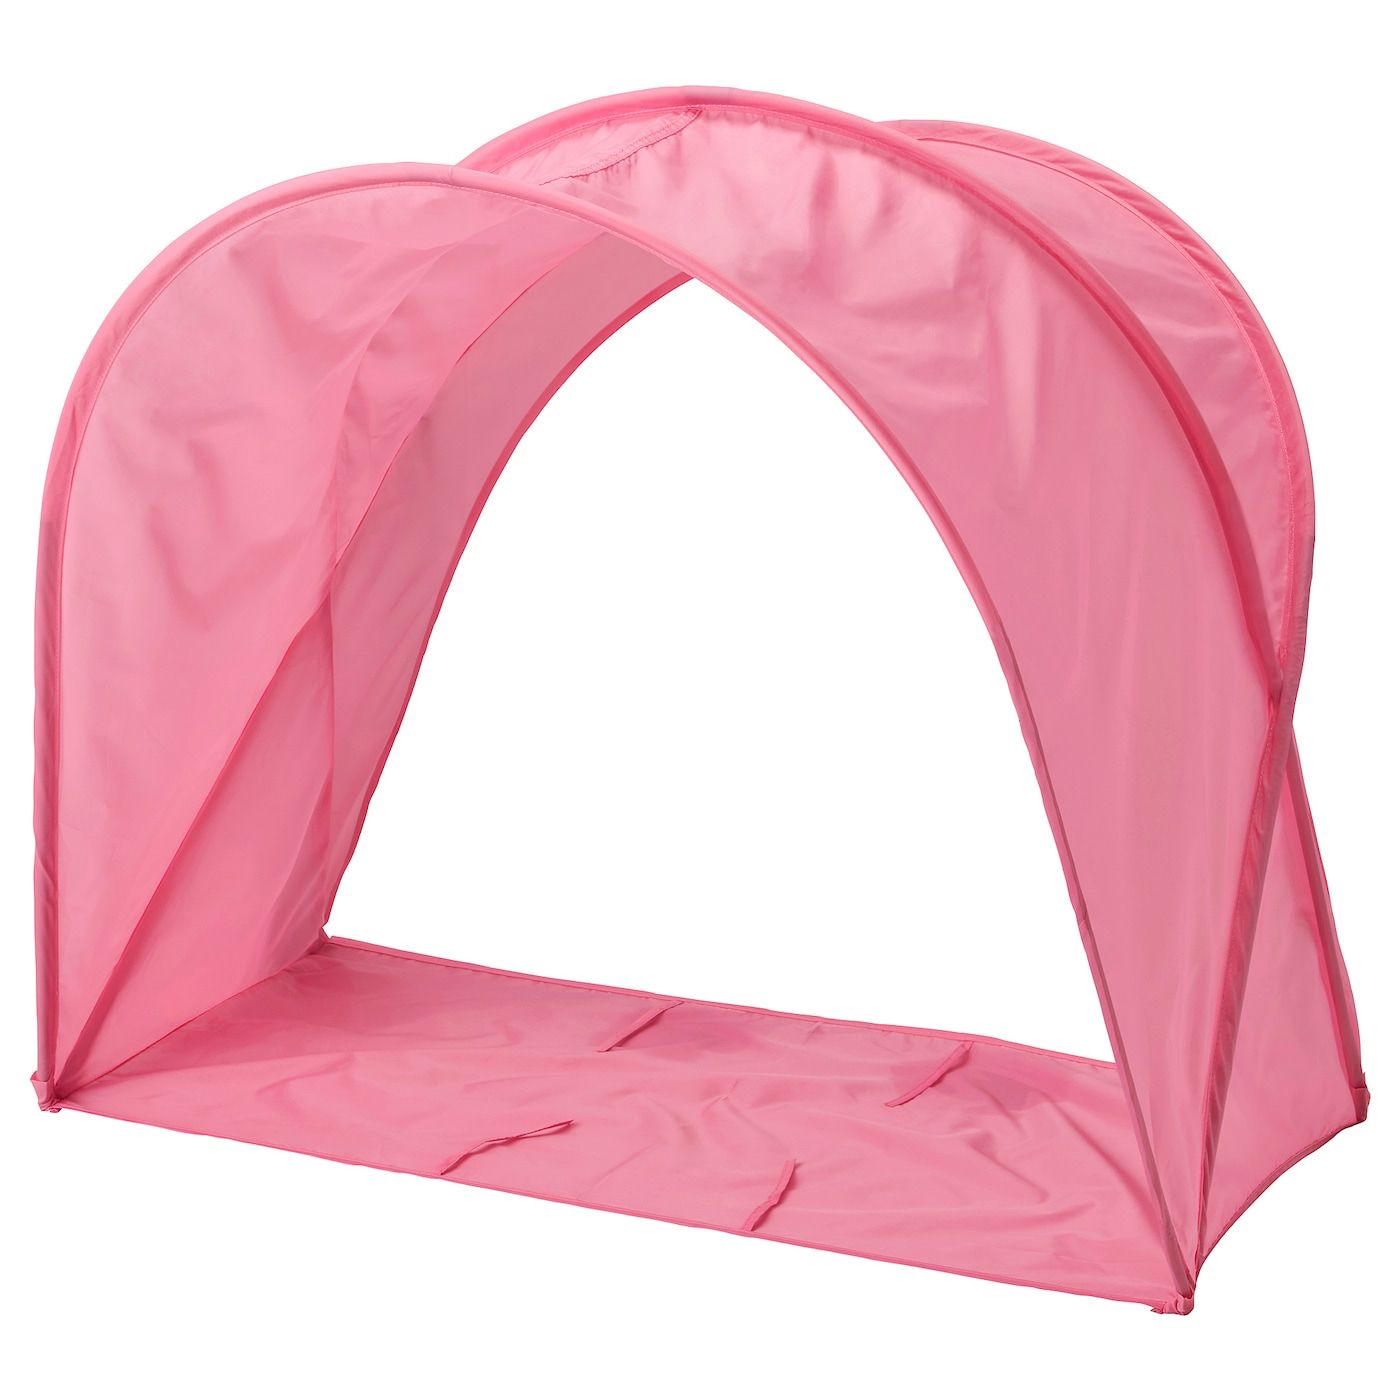 ikea pink canopy on Check Out This Sufflett From Ikea Here S A Little More Information Https Ingka Page Link Ibmlus7u8nwy6kp48 In 2021 Bed Tent Tent Kid Beds